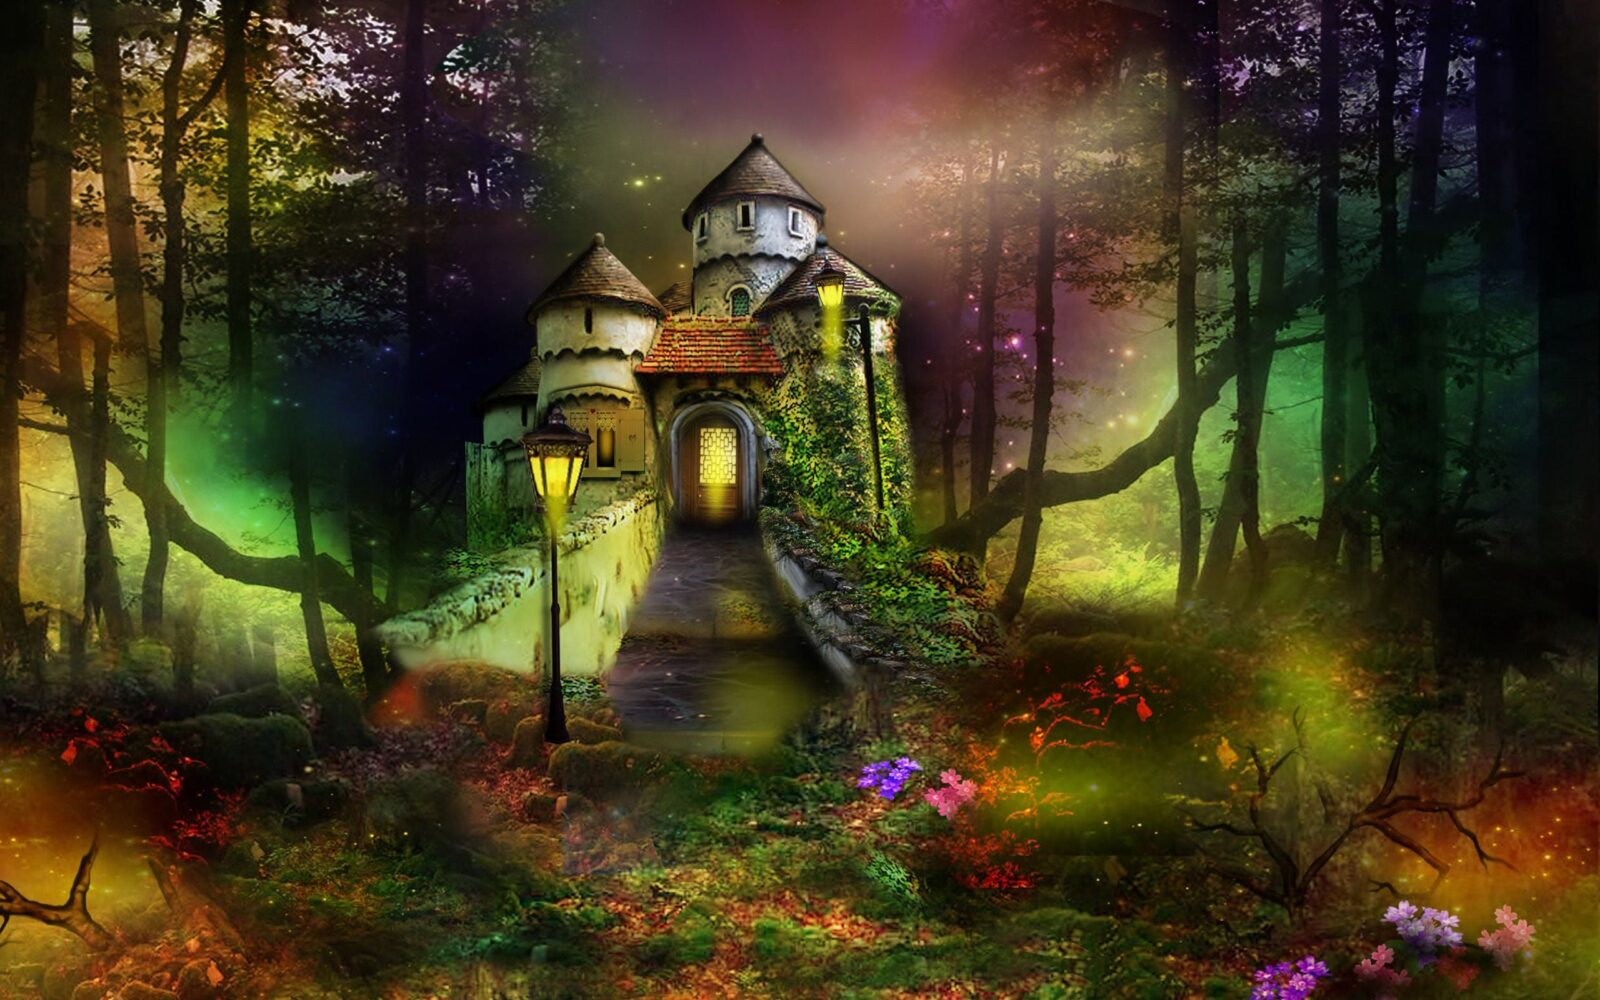 21 fairy tales castles hd wallpapers high quality download for House images hd